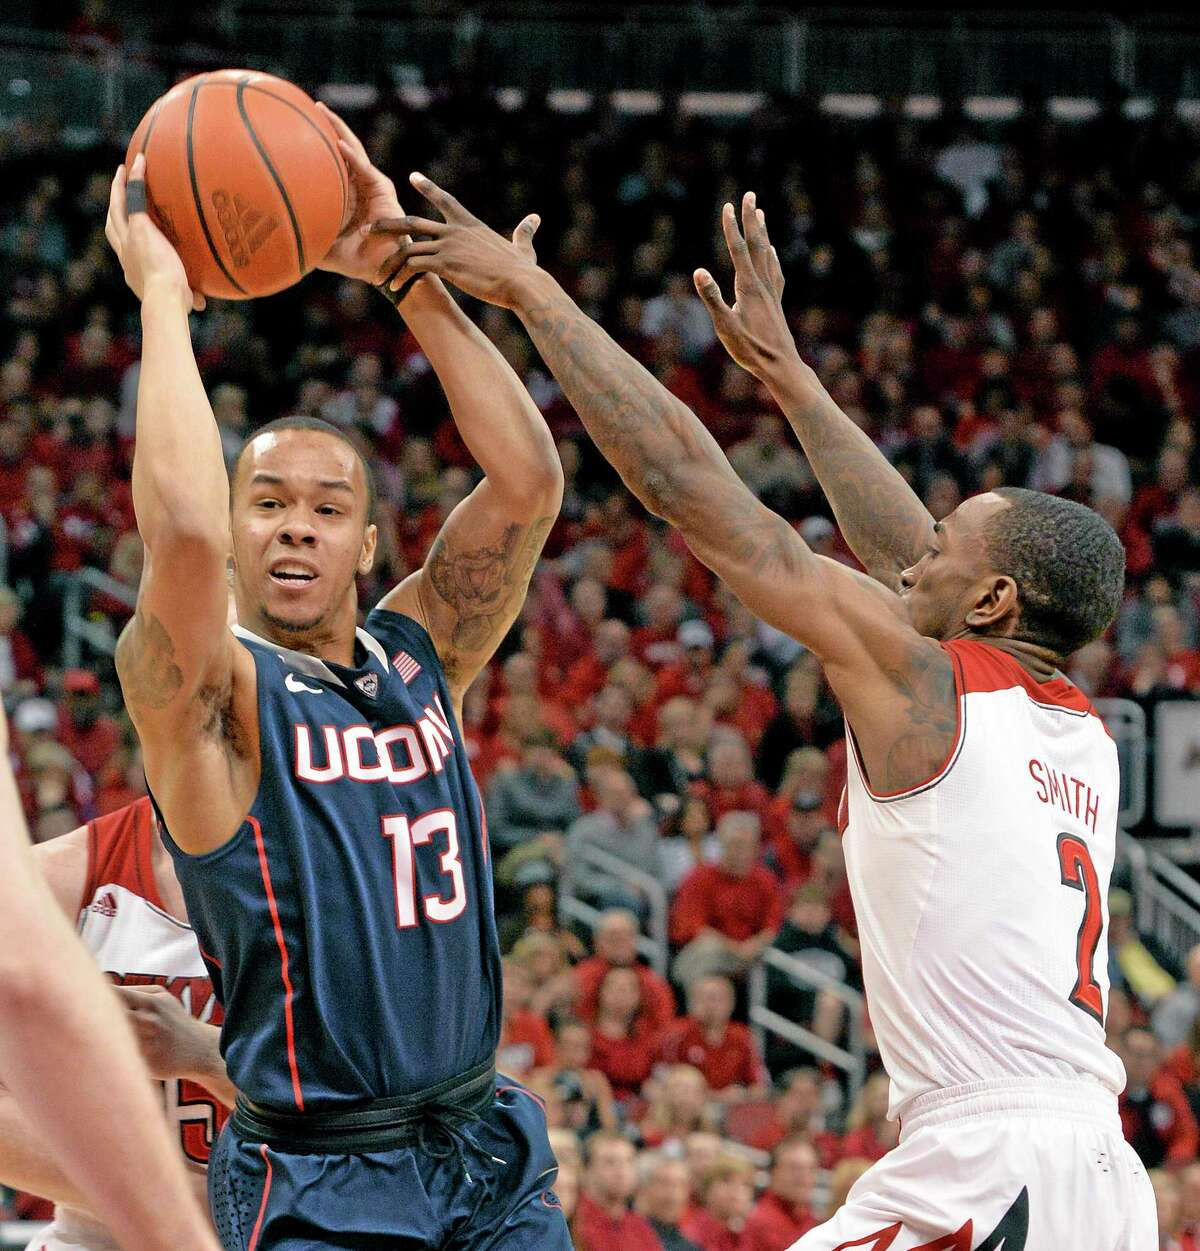 Shabazz Napier, left, edged Louisville's Russ Smith, right, and Cincinnati's Sean Kilpatrick for the inaugural American Athletic Conference Player of the Year award.